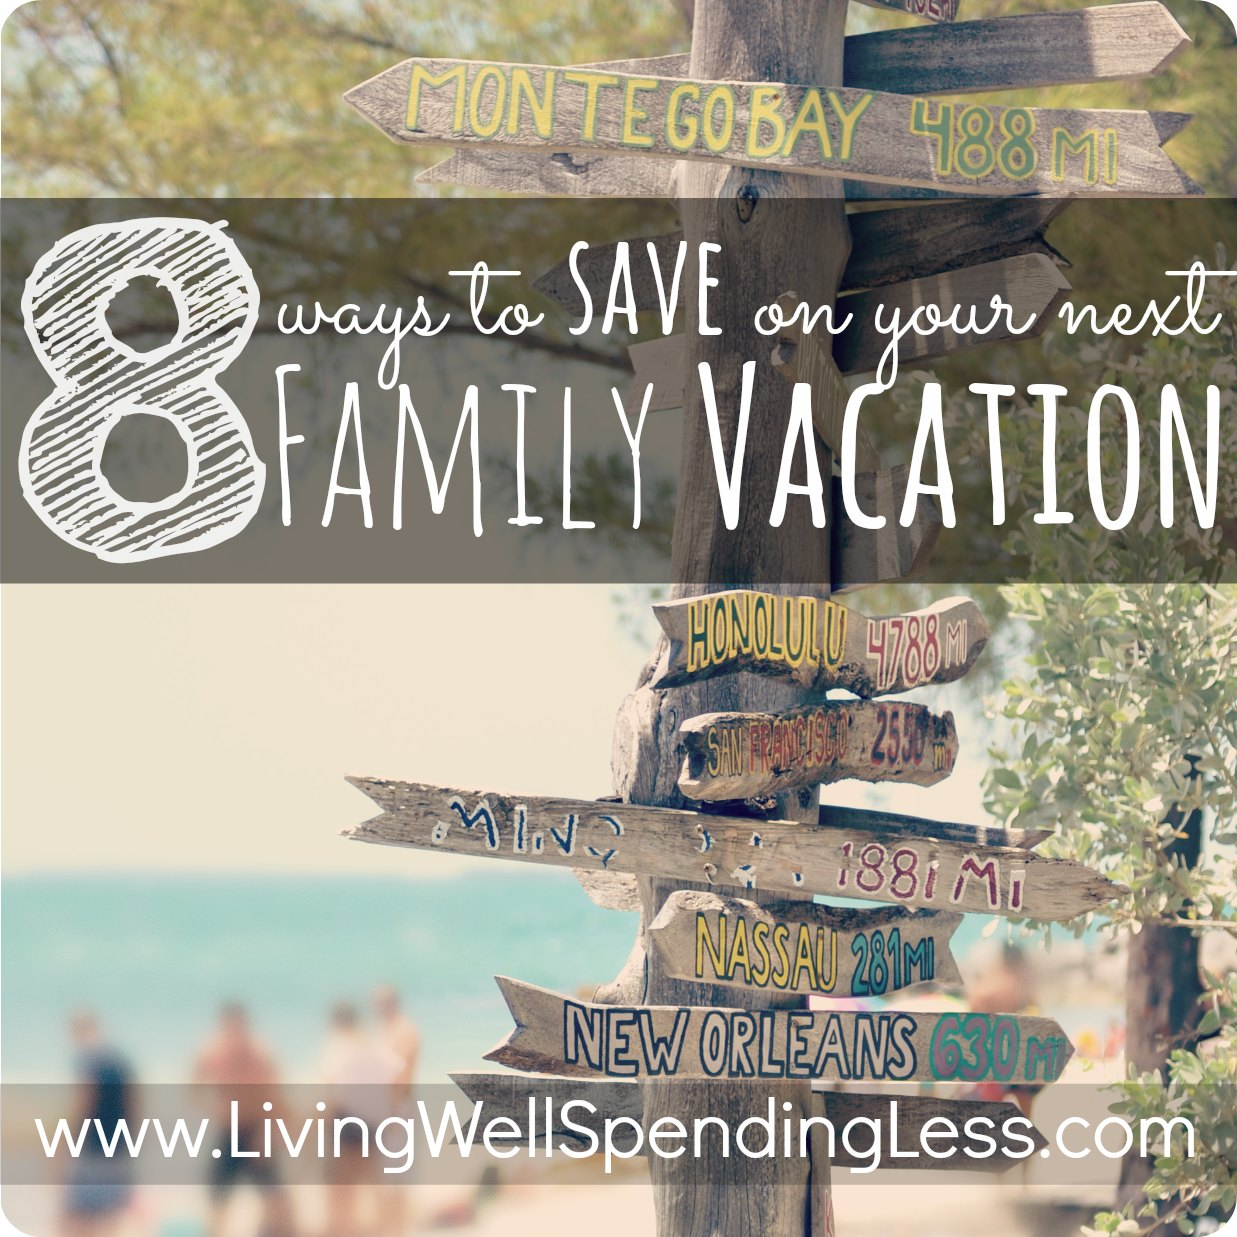 How to Save on Family Vacation: 8 Tips